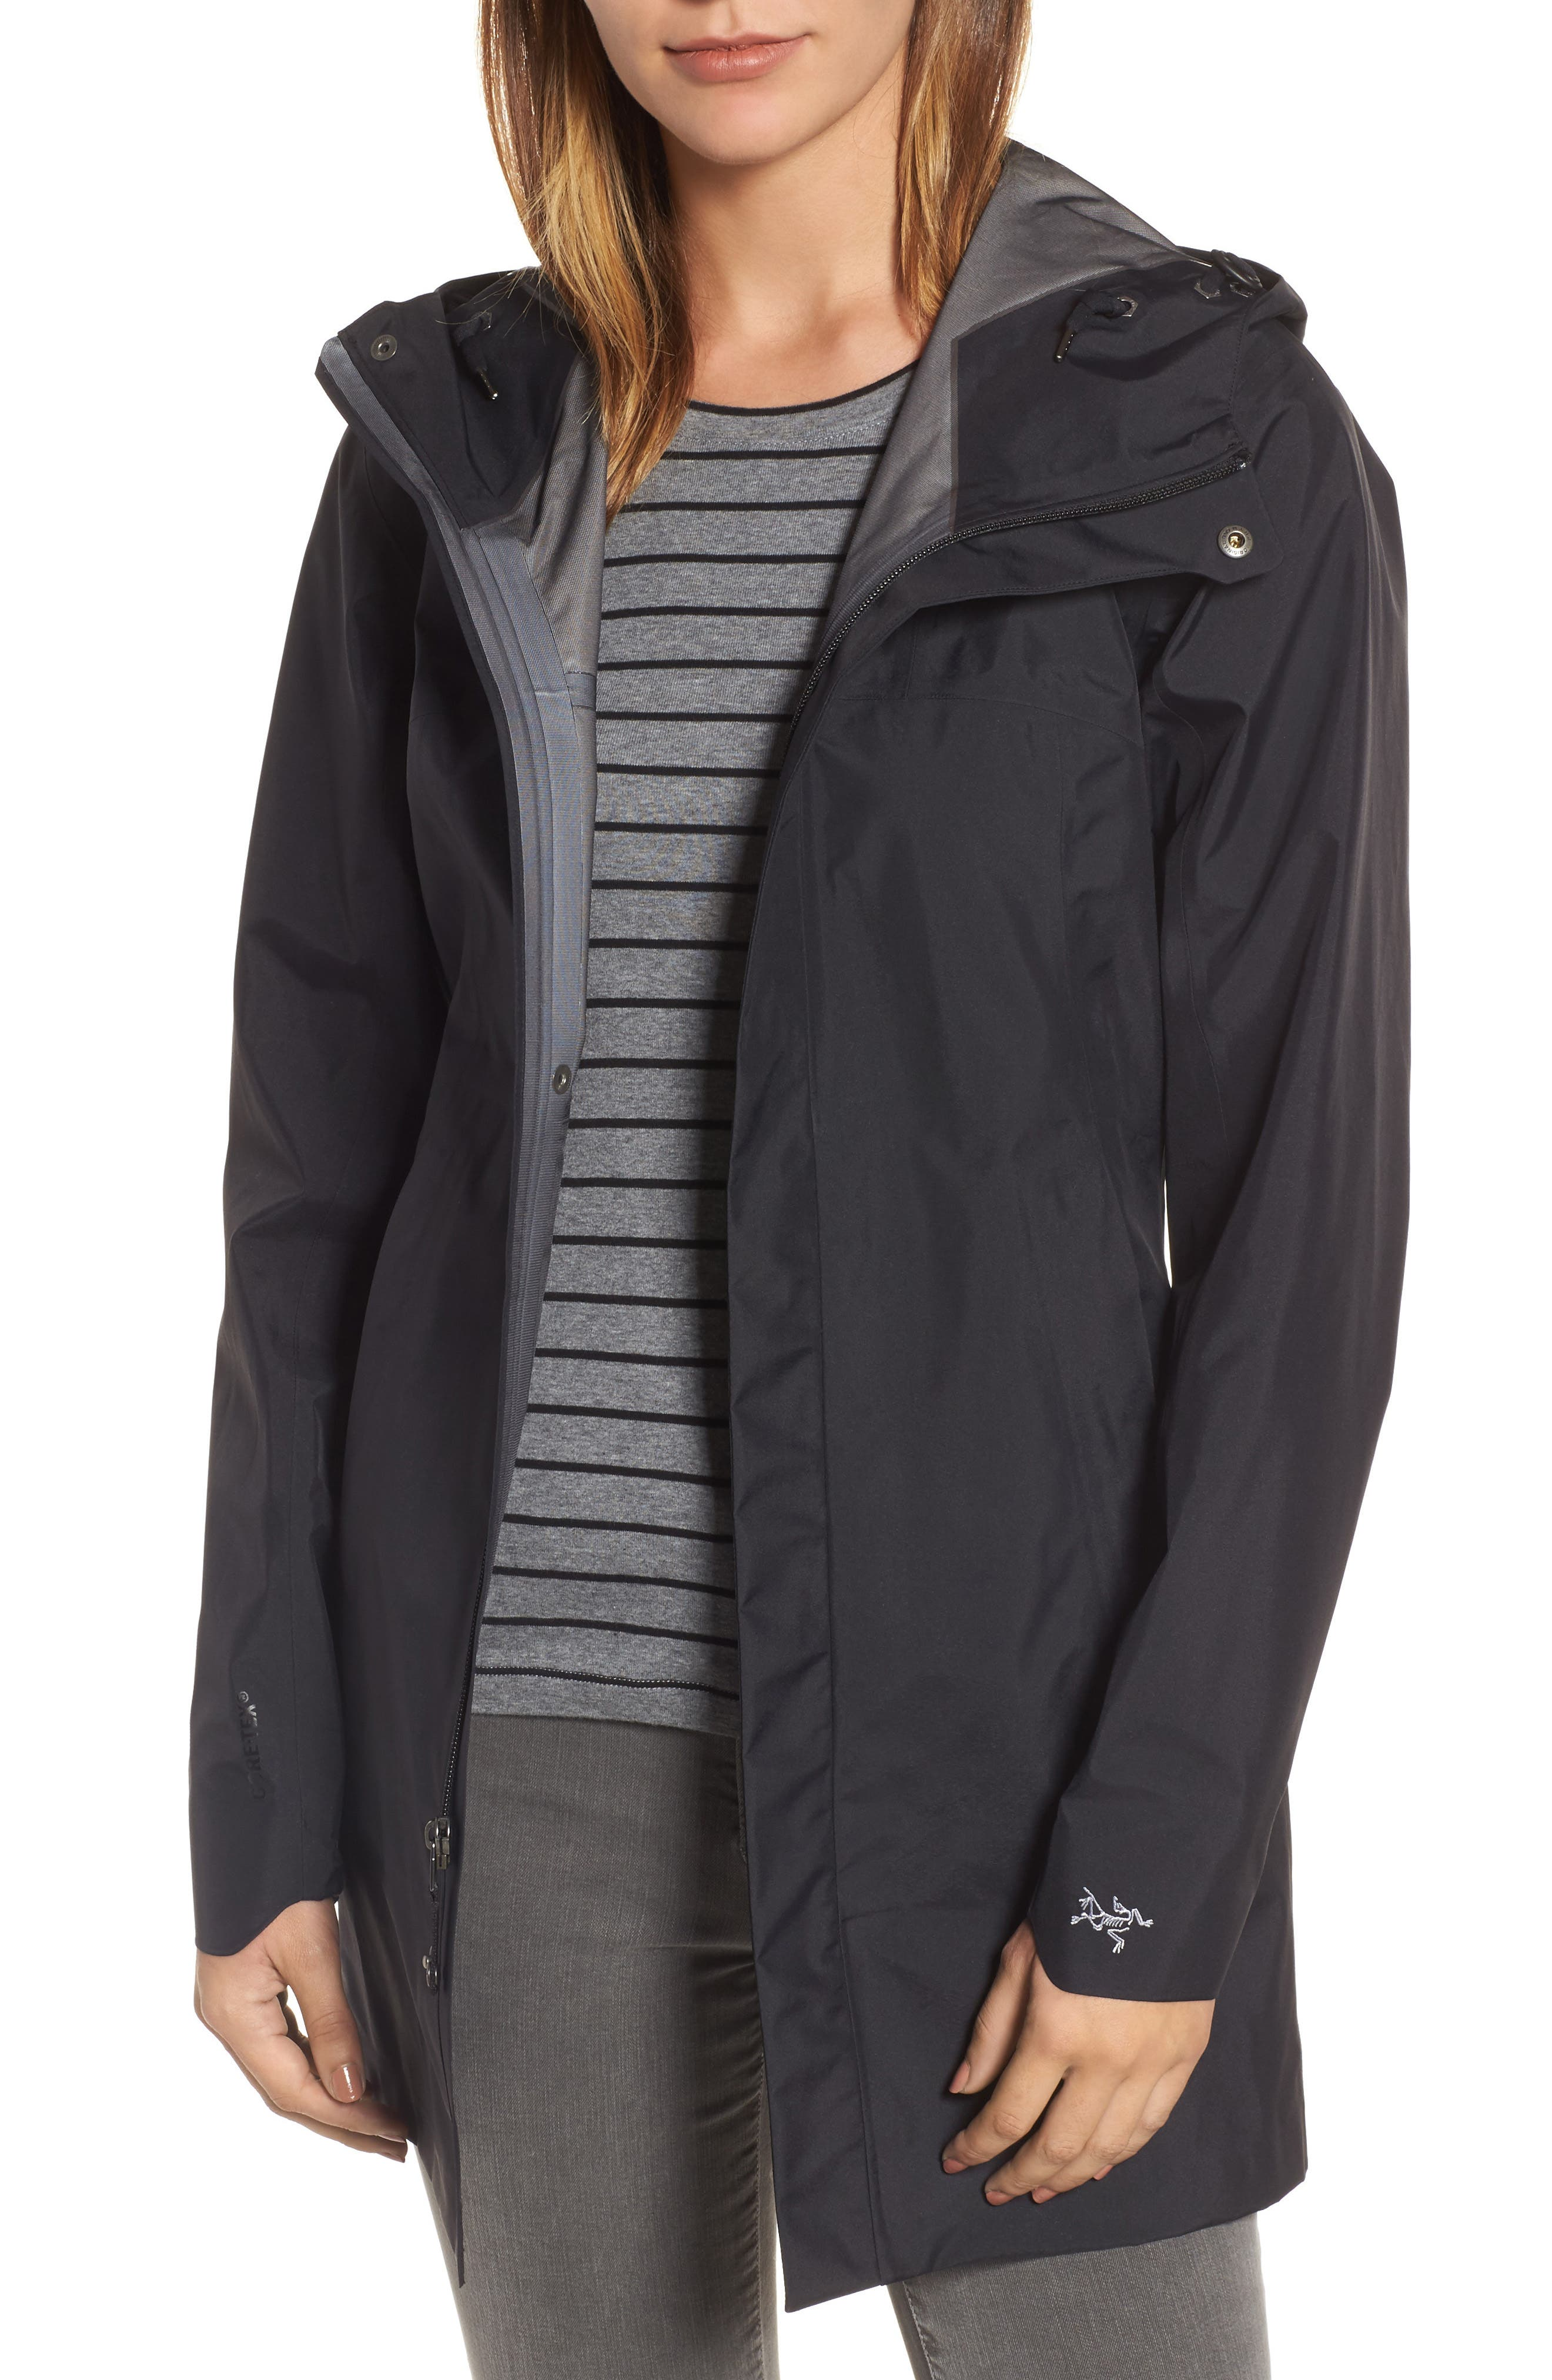 'Codetta' Waterproof Relaxed Fit Gore-Tex<sup>®</sup> 3L Rain Jacket, Main, color, 001